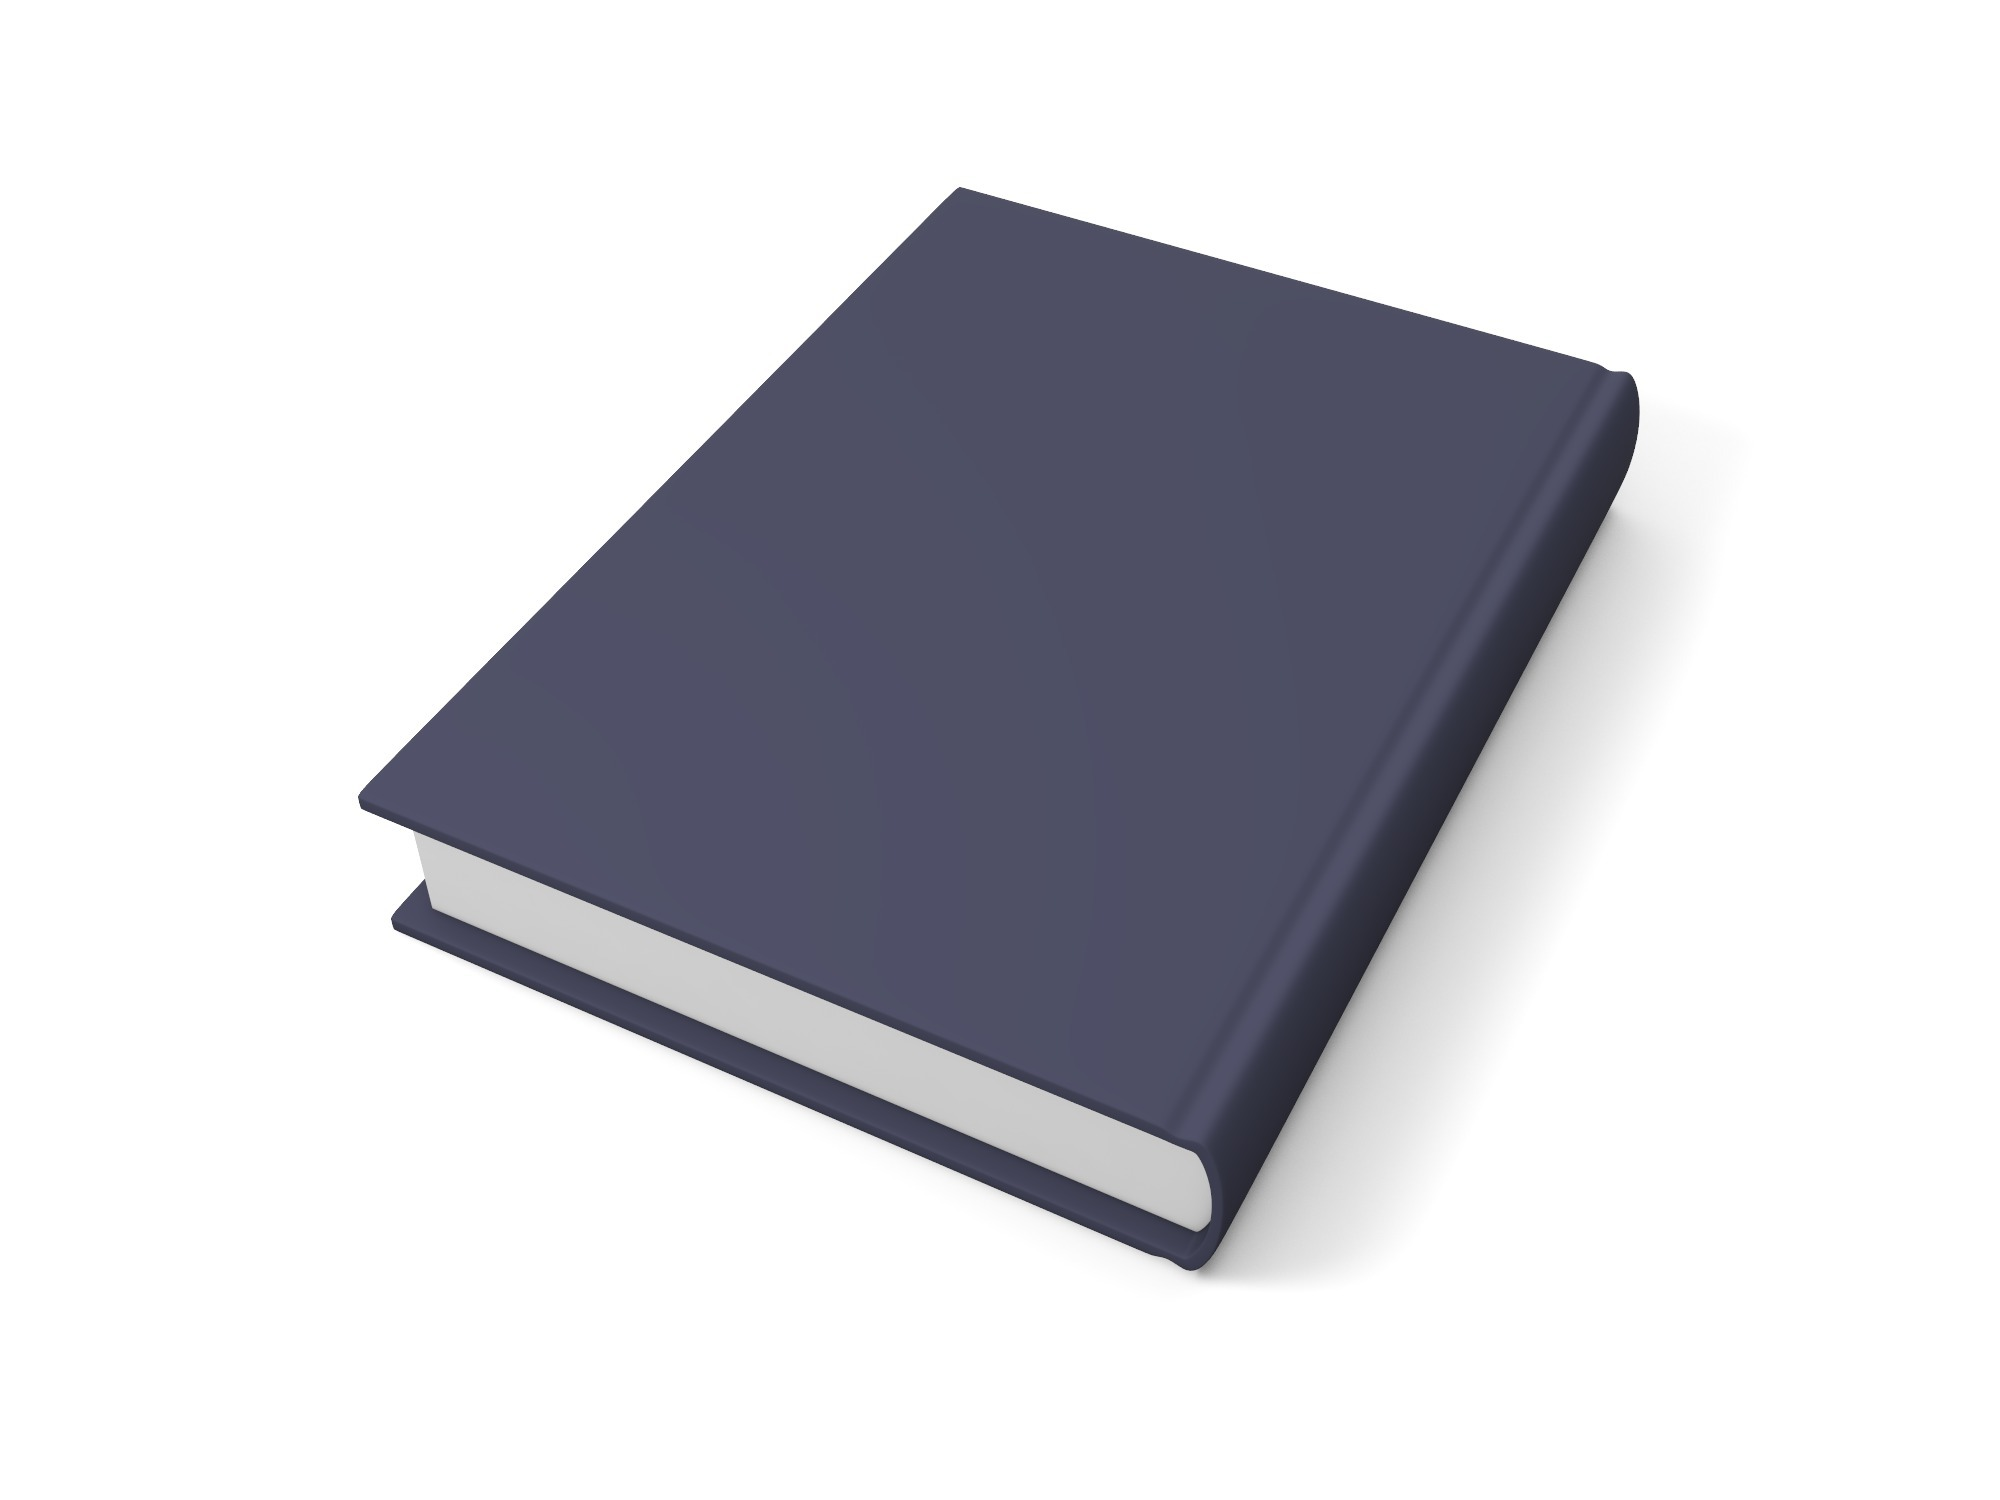 Thick rectangular book - 3D design by Vectary assets Aug 20, 2018